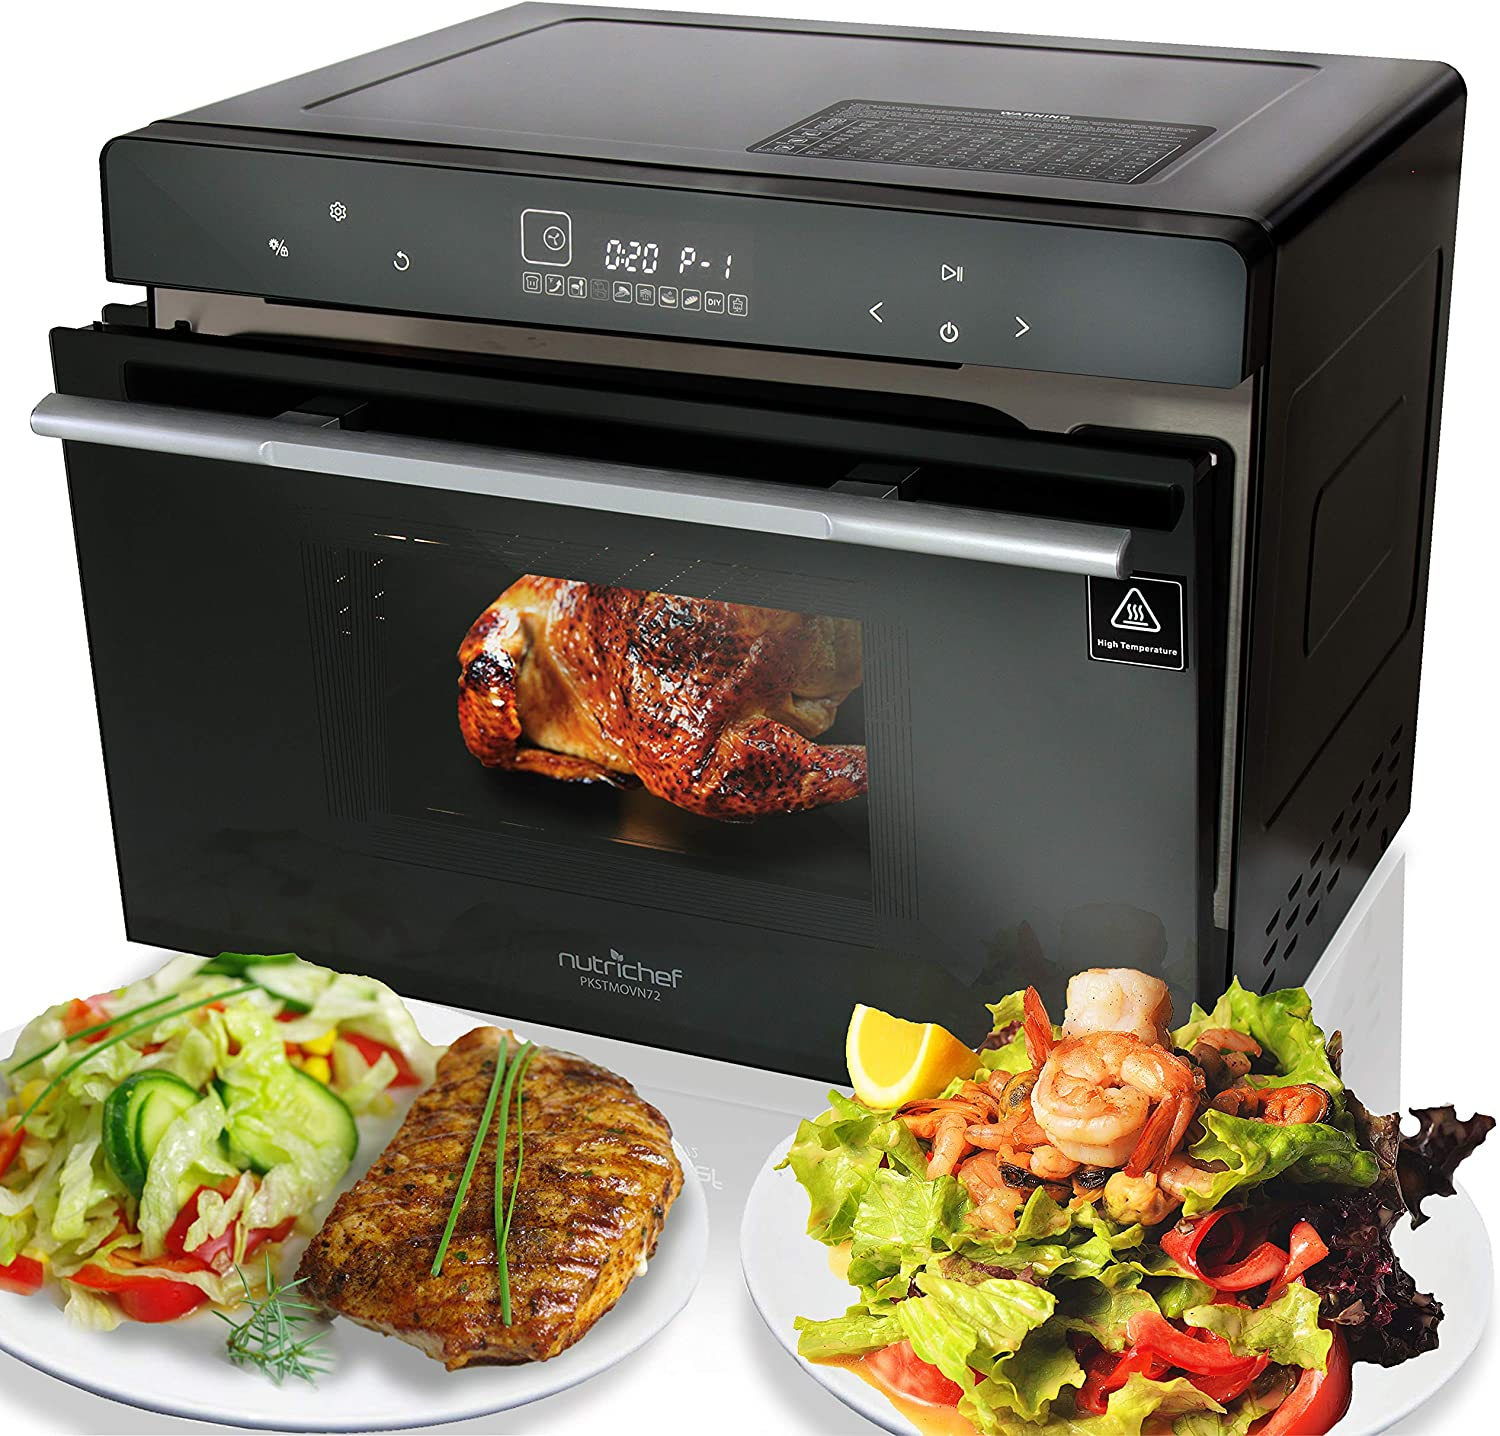 Electric Countertop Multifunction Convection Oven – 1800W 42QT Smart Digital Stainless Steel Compact Kitchen Black Rotisserie Toaster w Baking Pan, Grill Rack Tray, Glass Door – NutriChef PKSTMOVN72